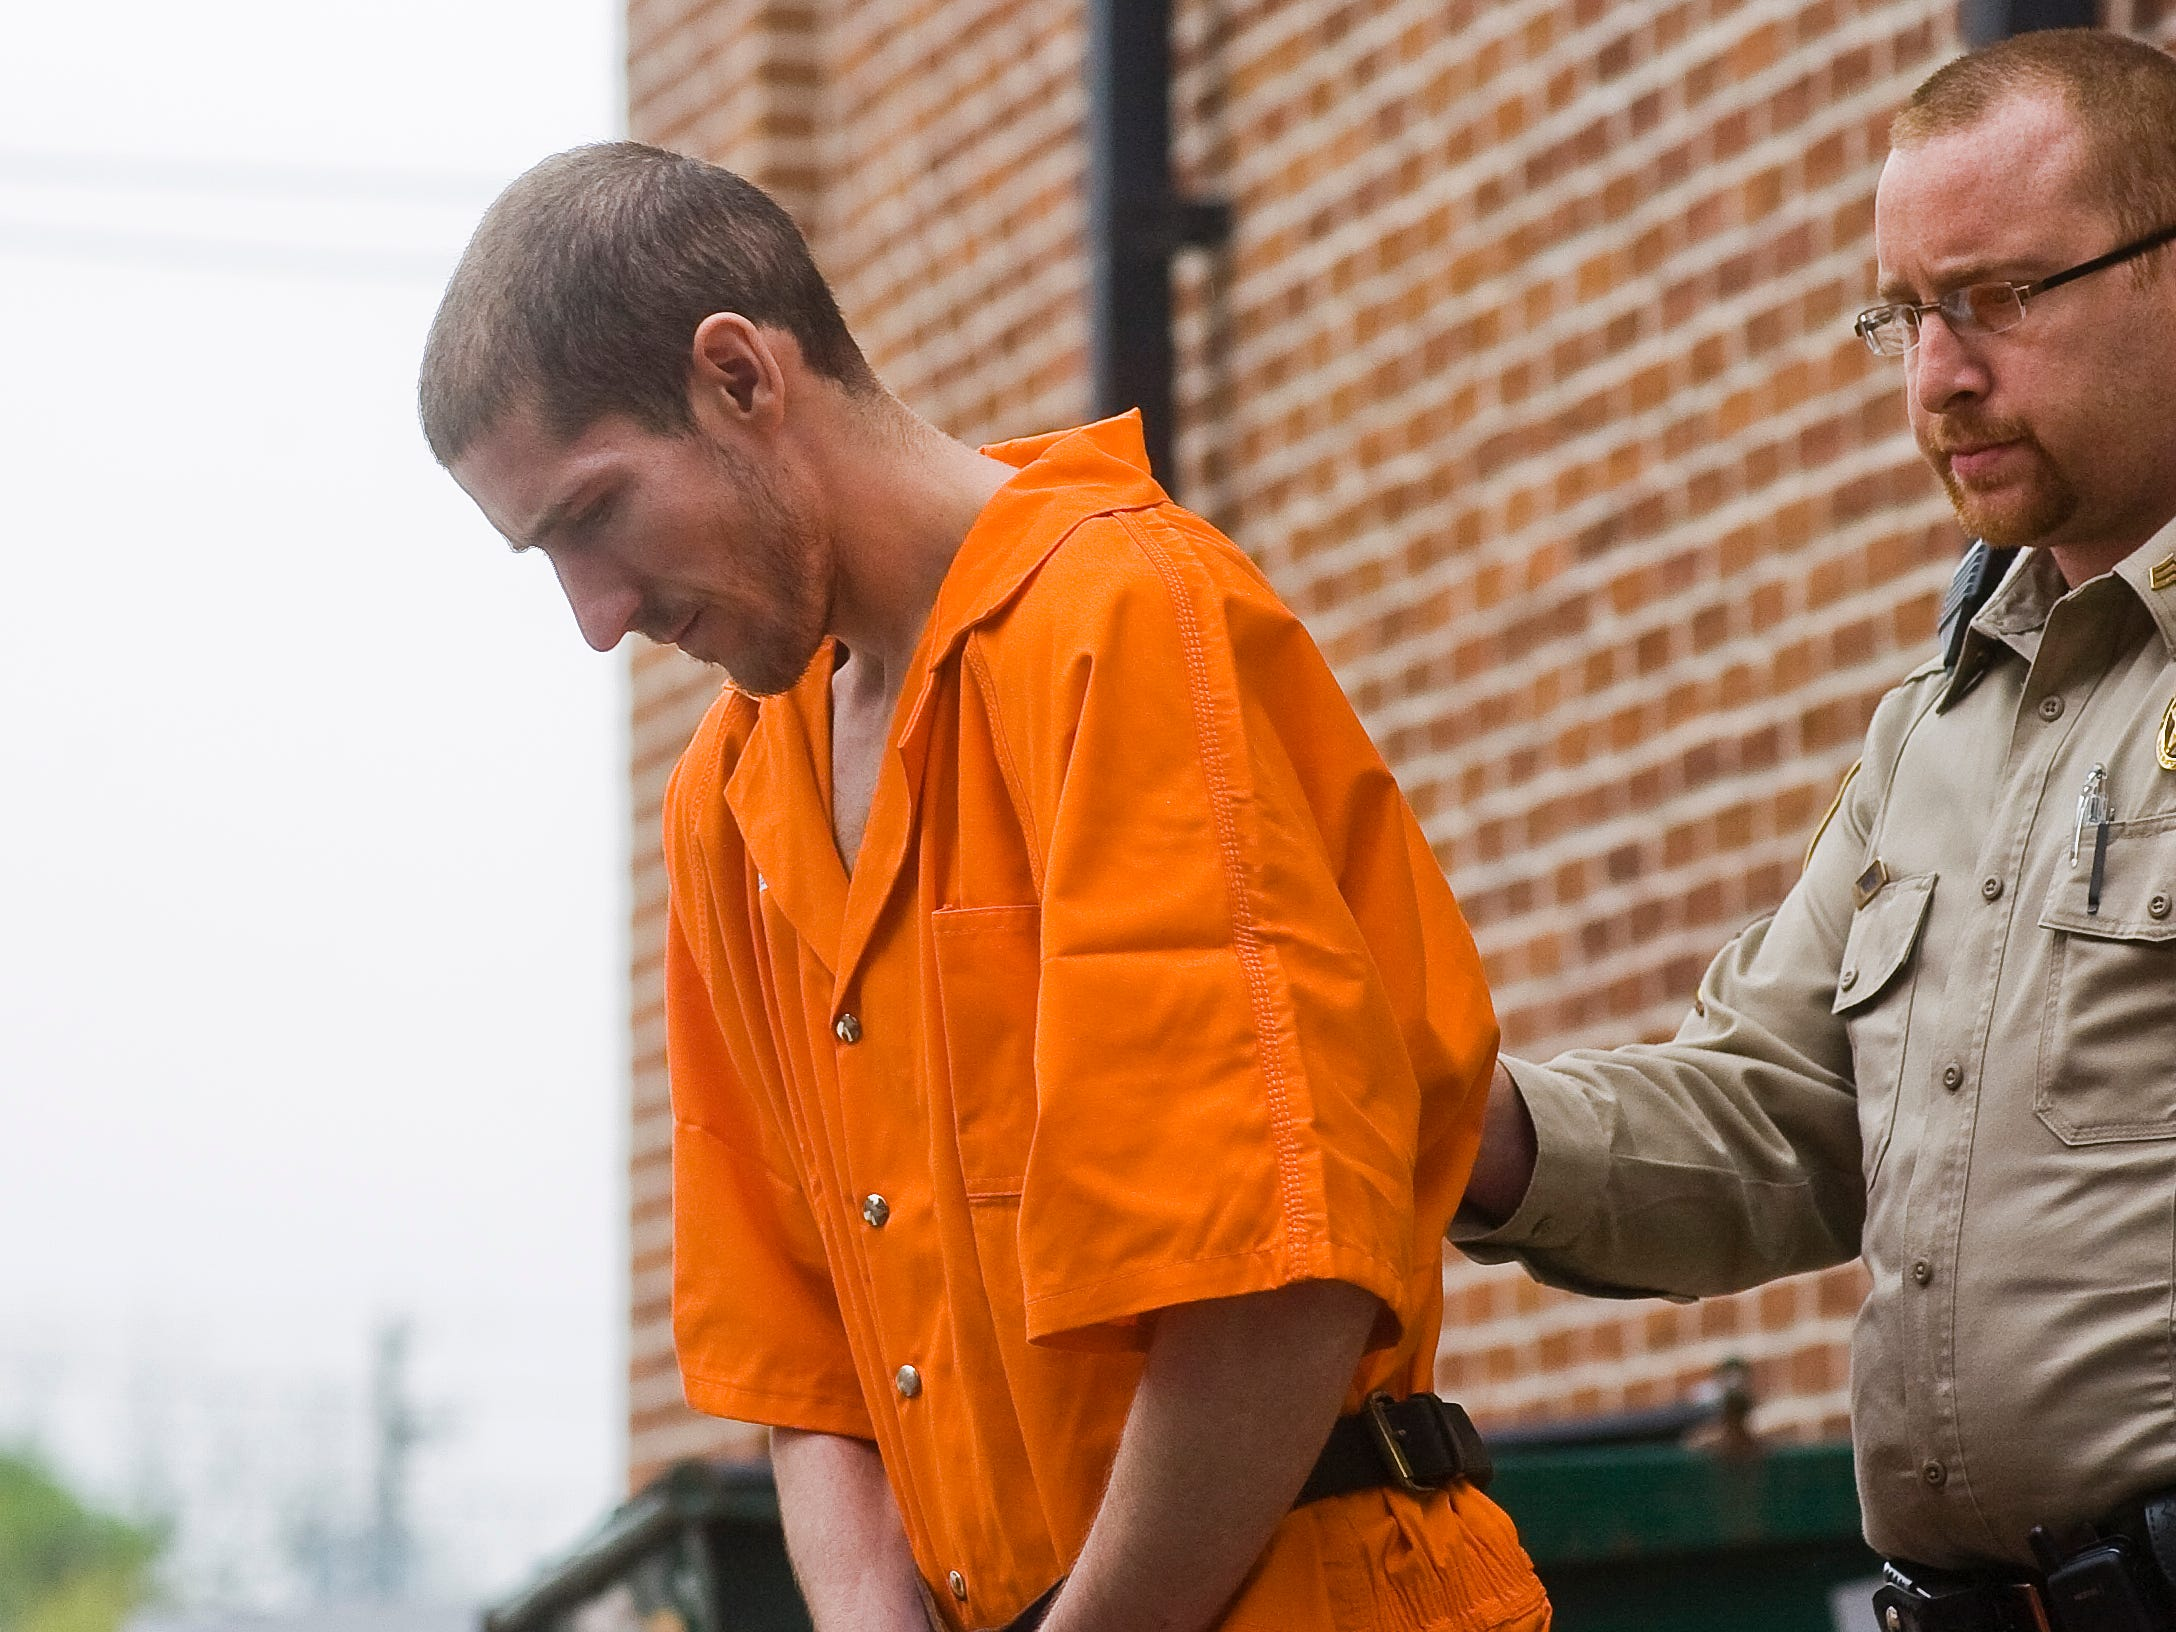 An Adams County Sheriff deputy leads Jonathan Leonard, 25, out of the Adams County Courthouse on April 18, 2012 after his preliminary hearing. Leonard faces charges of criminal homicide, robbery and theft, and also added on Wednesday was a charge of involuntary deviate sexual intercourse.